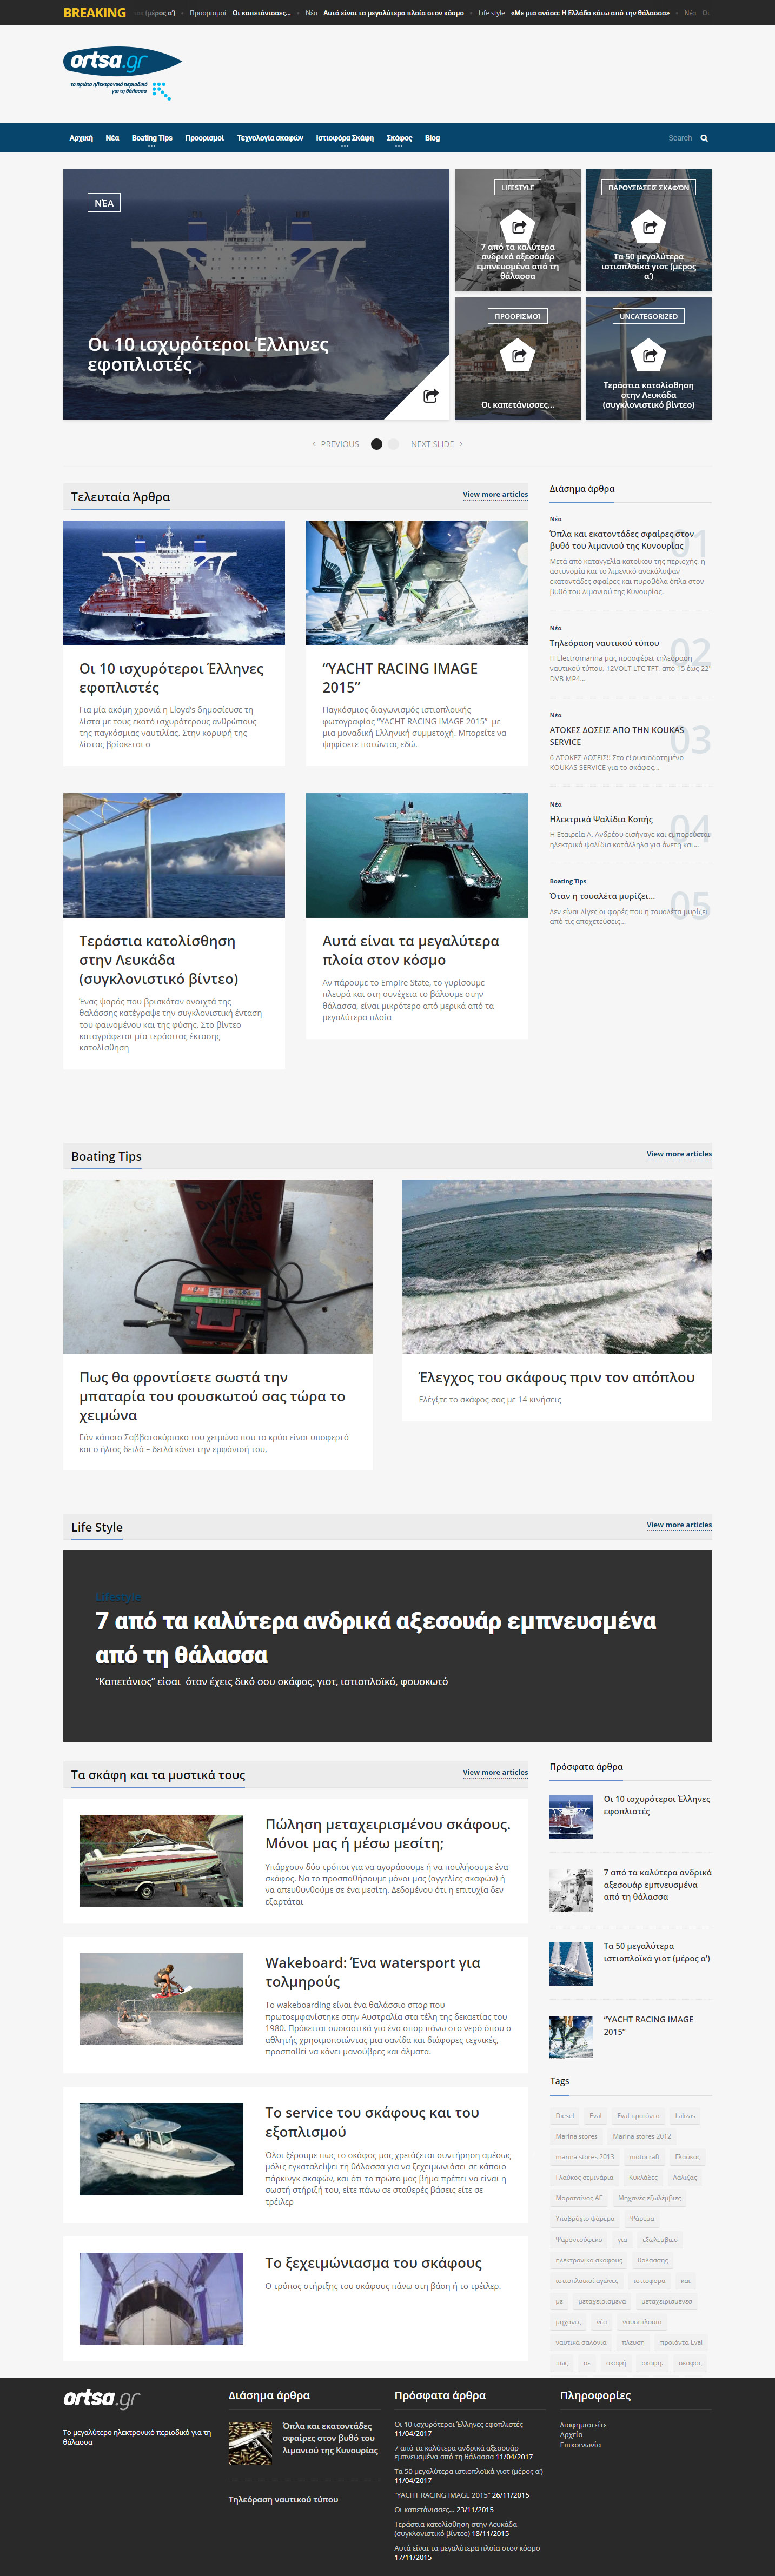 ortsa-Website-1